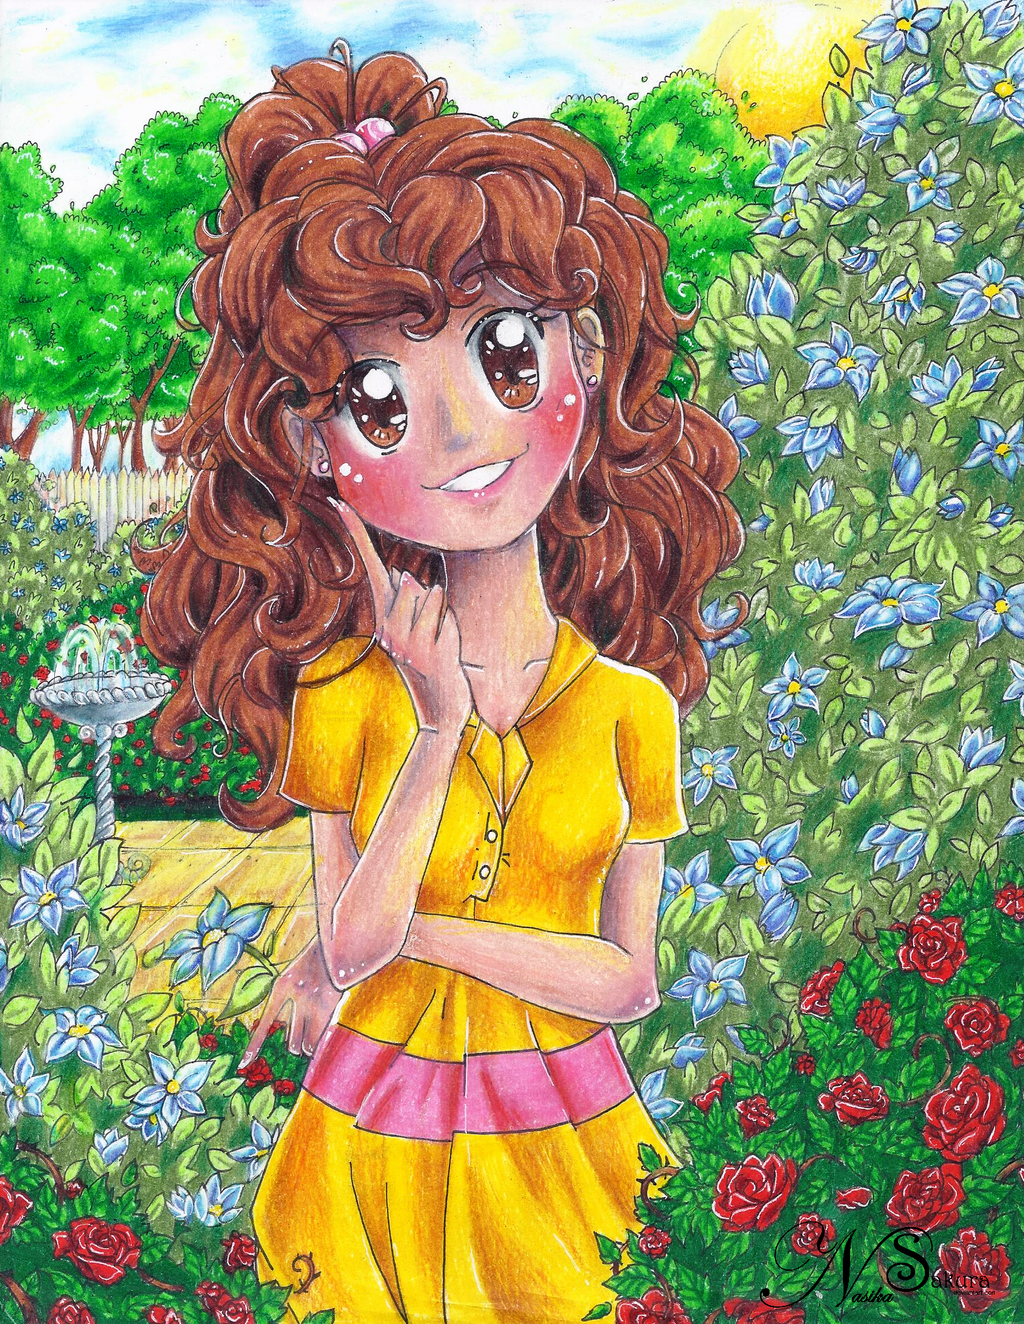 Gracie in the Garden by NasikaSakura